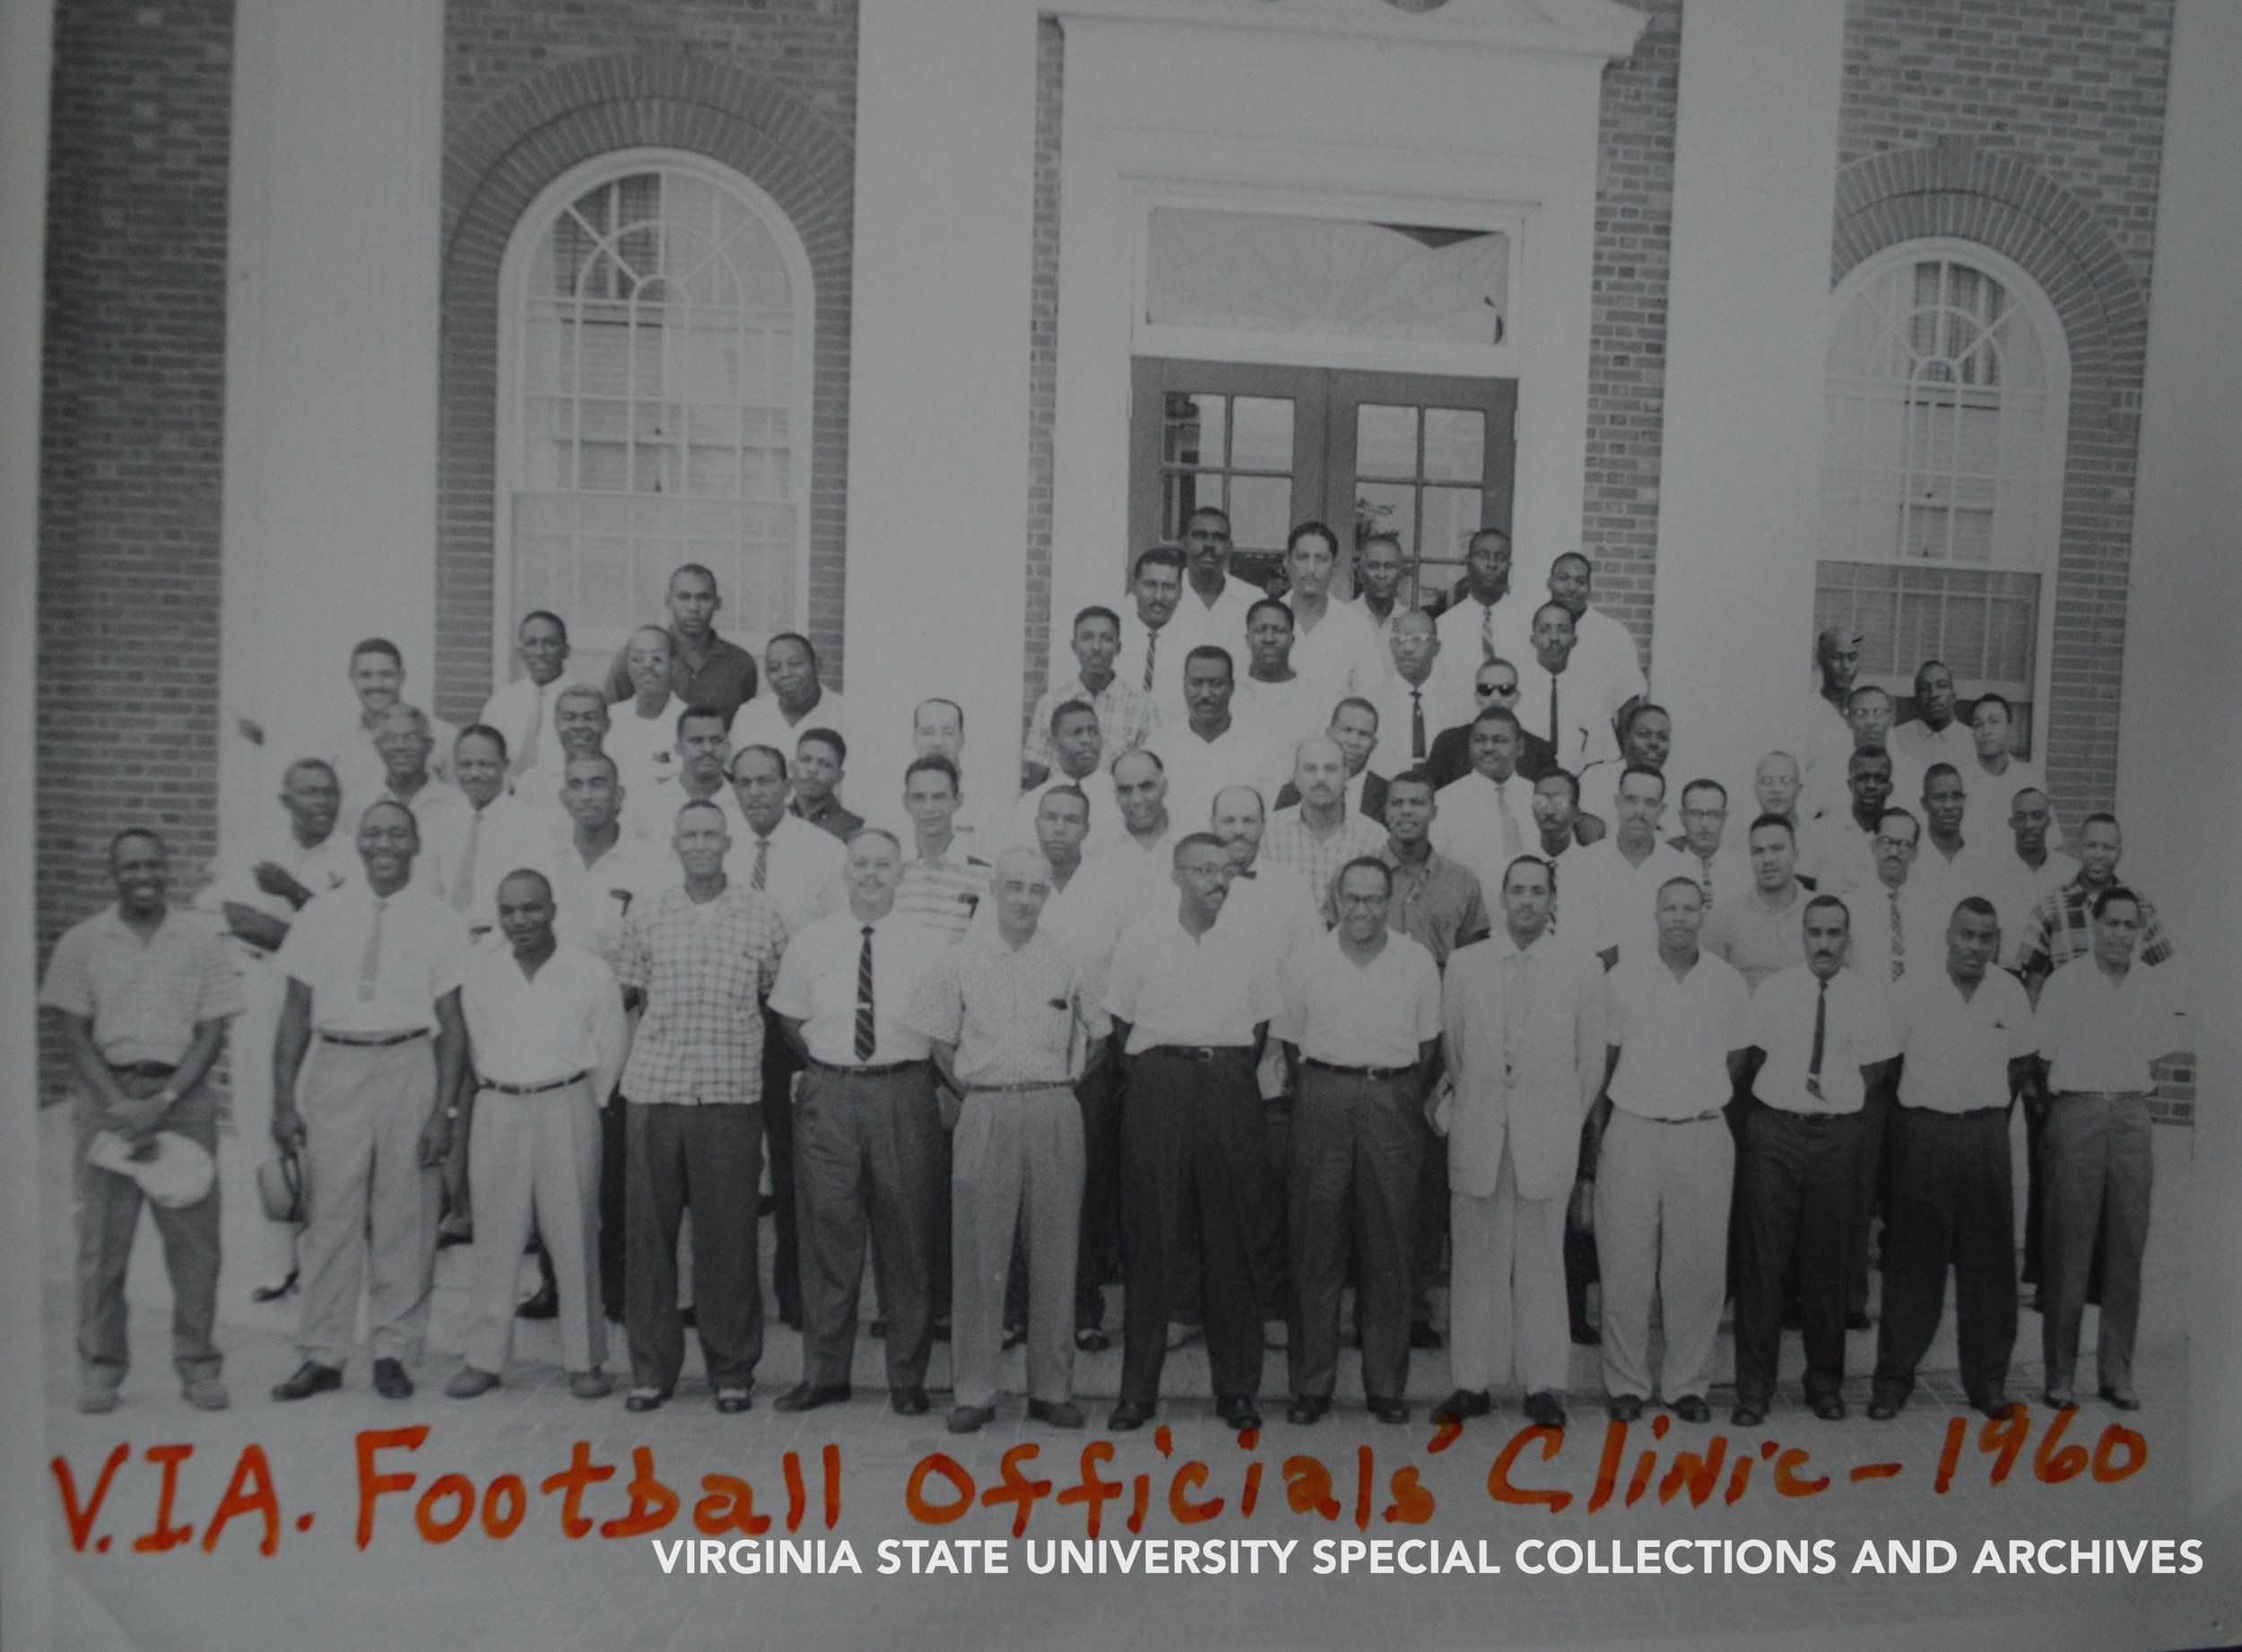 Football Clinic Officials, 1960